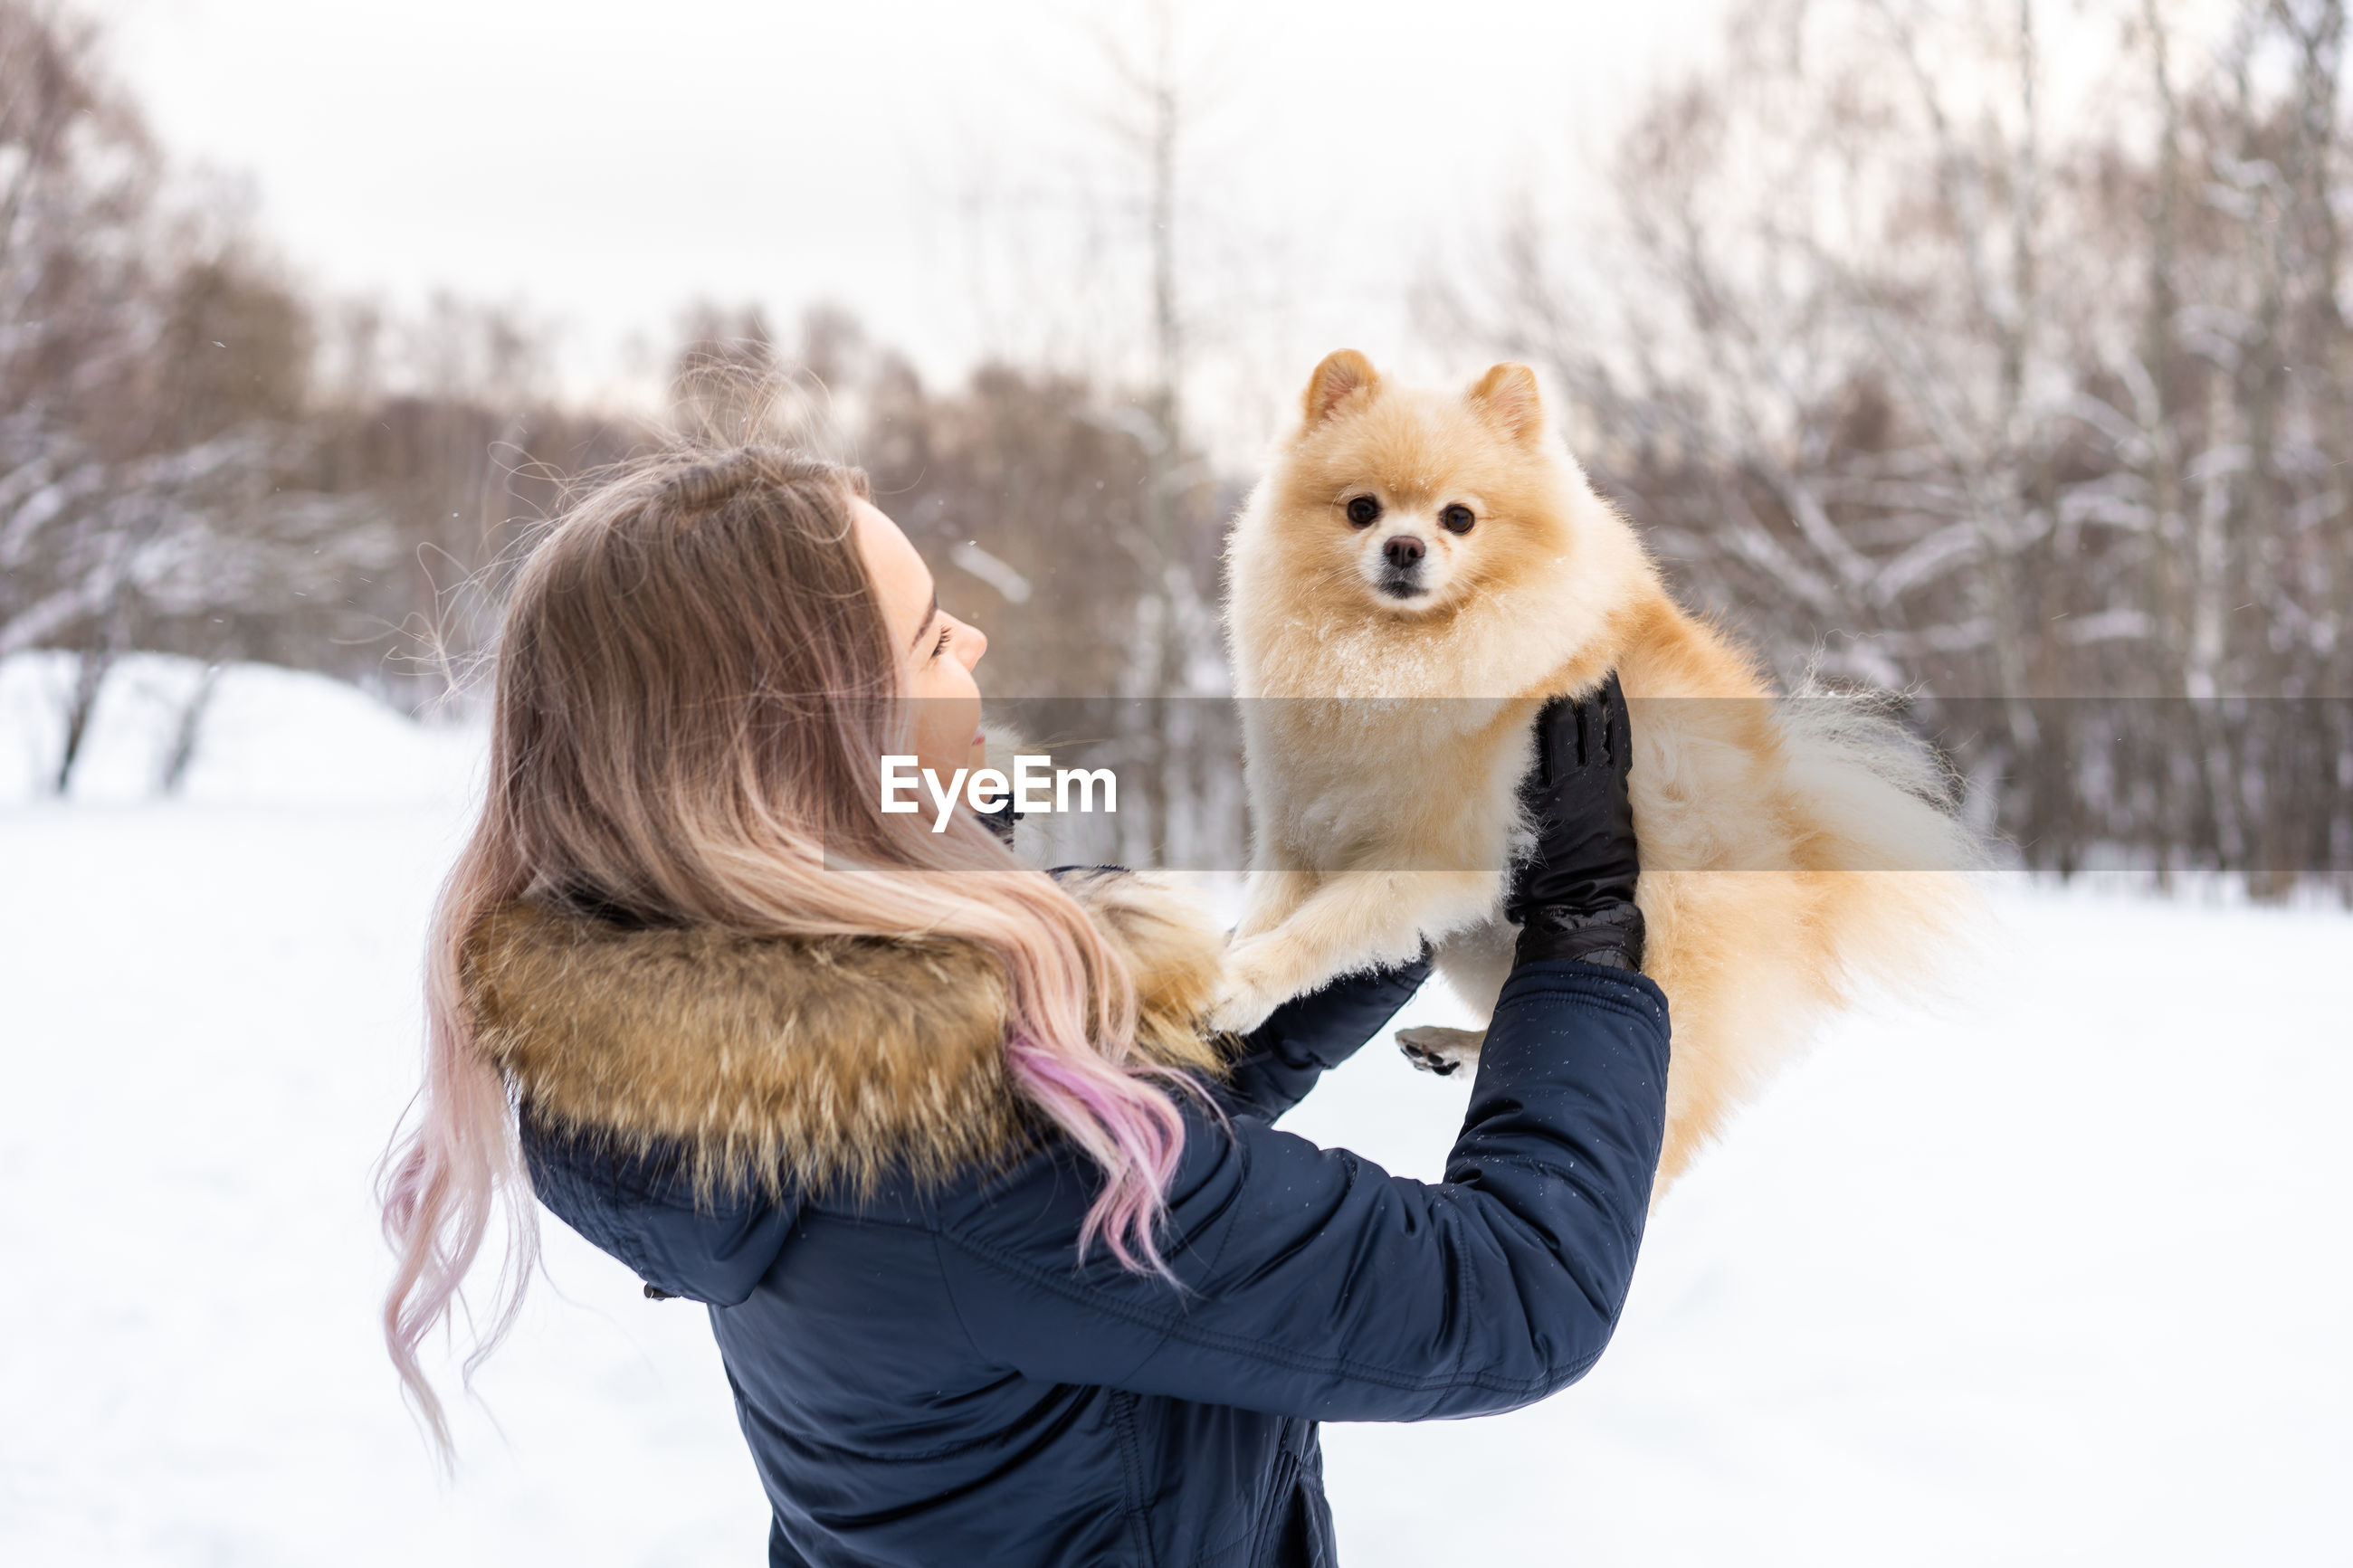 Young woman carrying dog while standing in snow during winter